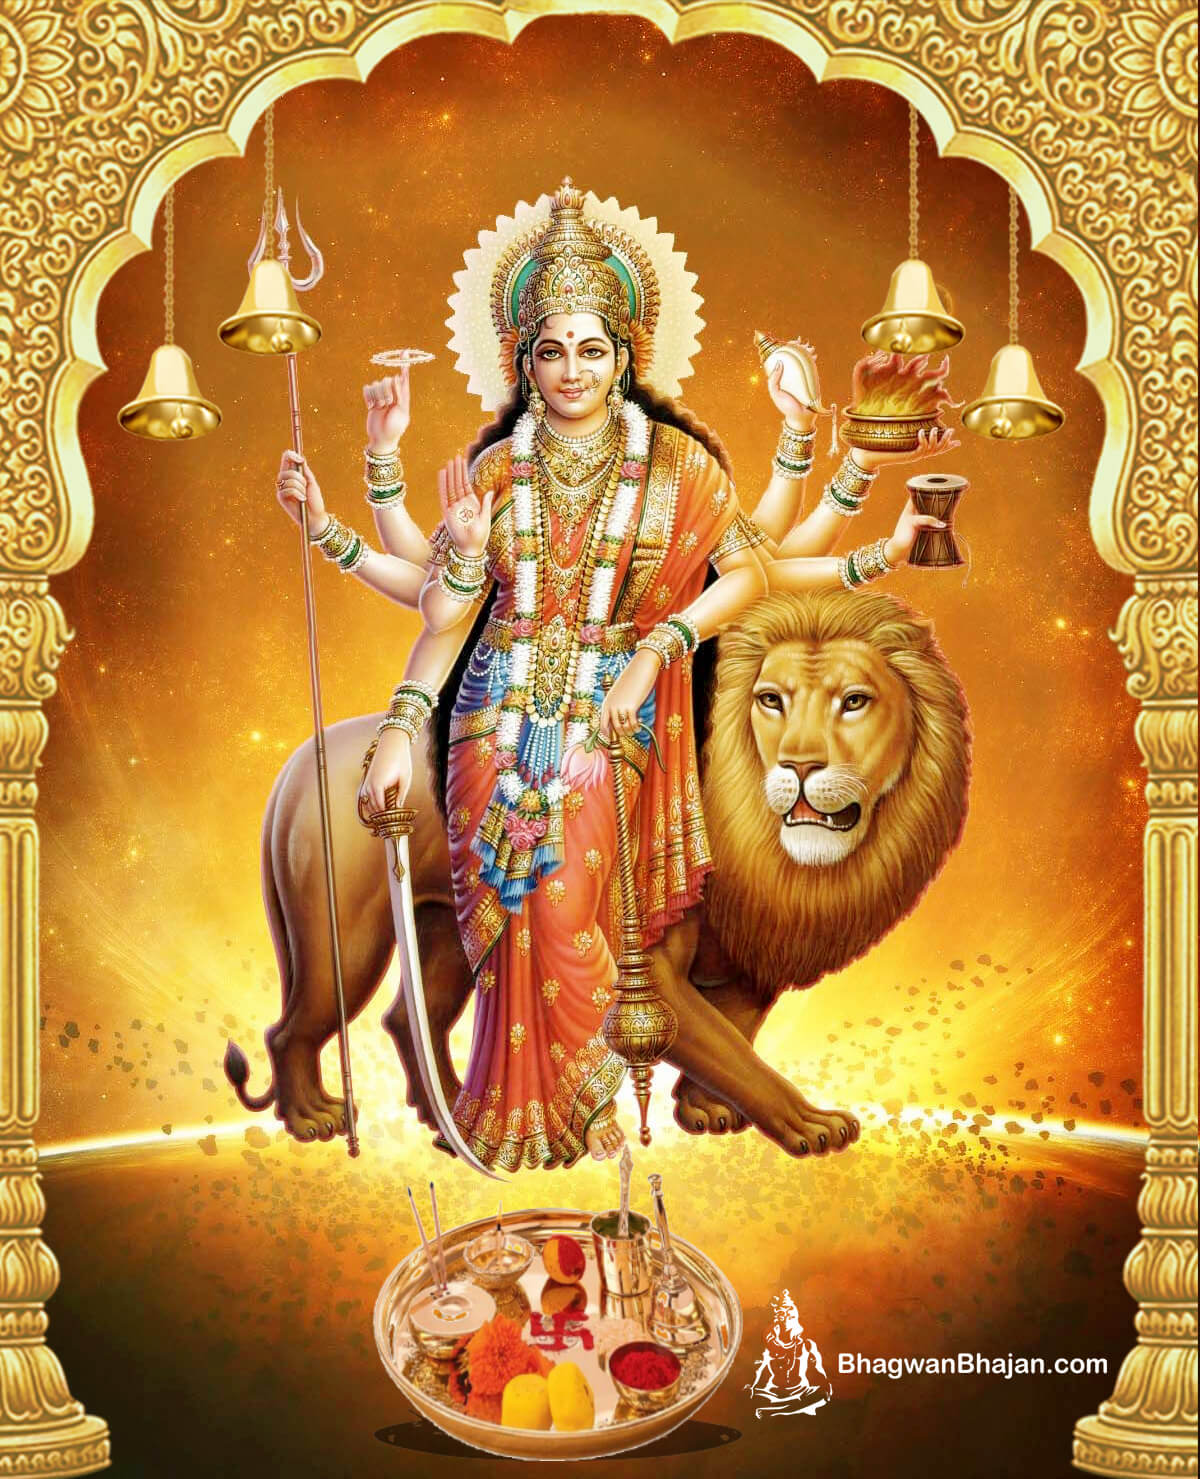 Download Free HD Wallpapers, Photos & Images Of Maa Durga